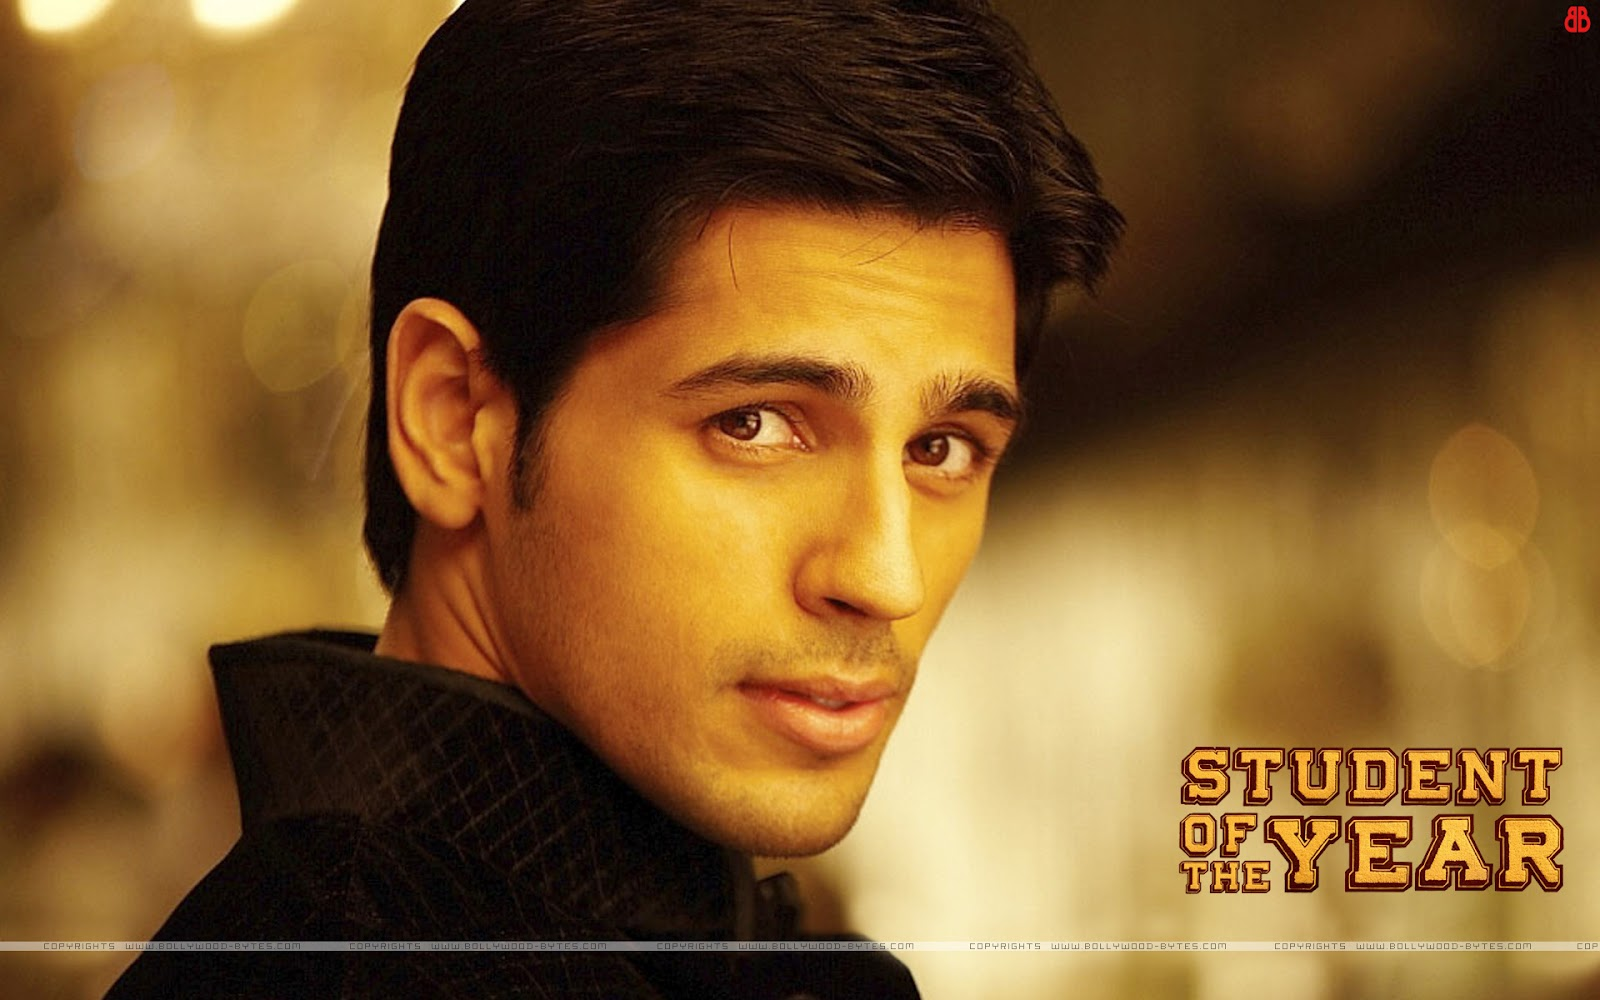 http://3.bp.blogspot.com/-kIf1avG3hRI/UGIQ1cTKdmI/AAAAAAAAPtE/DP02jCZN9k4/s1600/Student-Of-The-Year-+Sidharth-Malhotra-HD-Wallaper-25.jpg